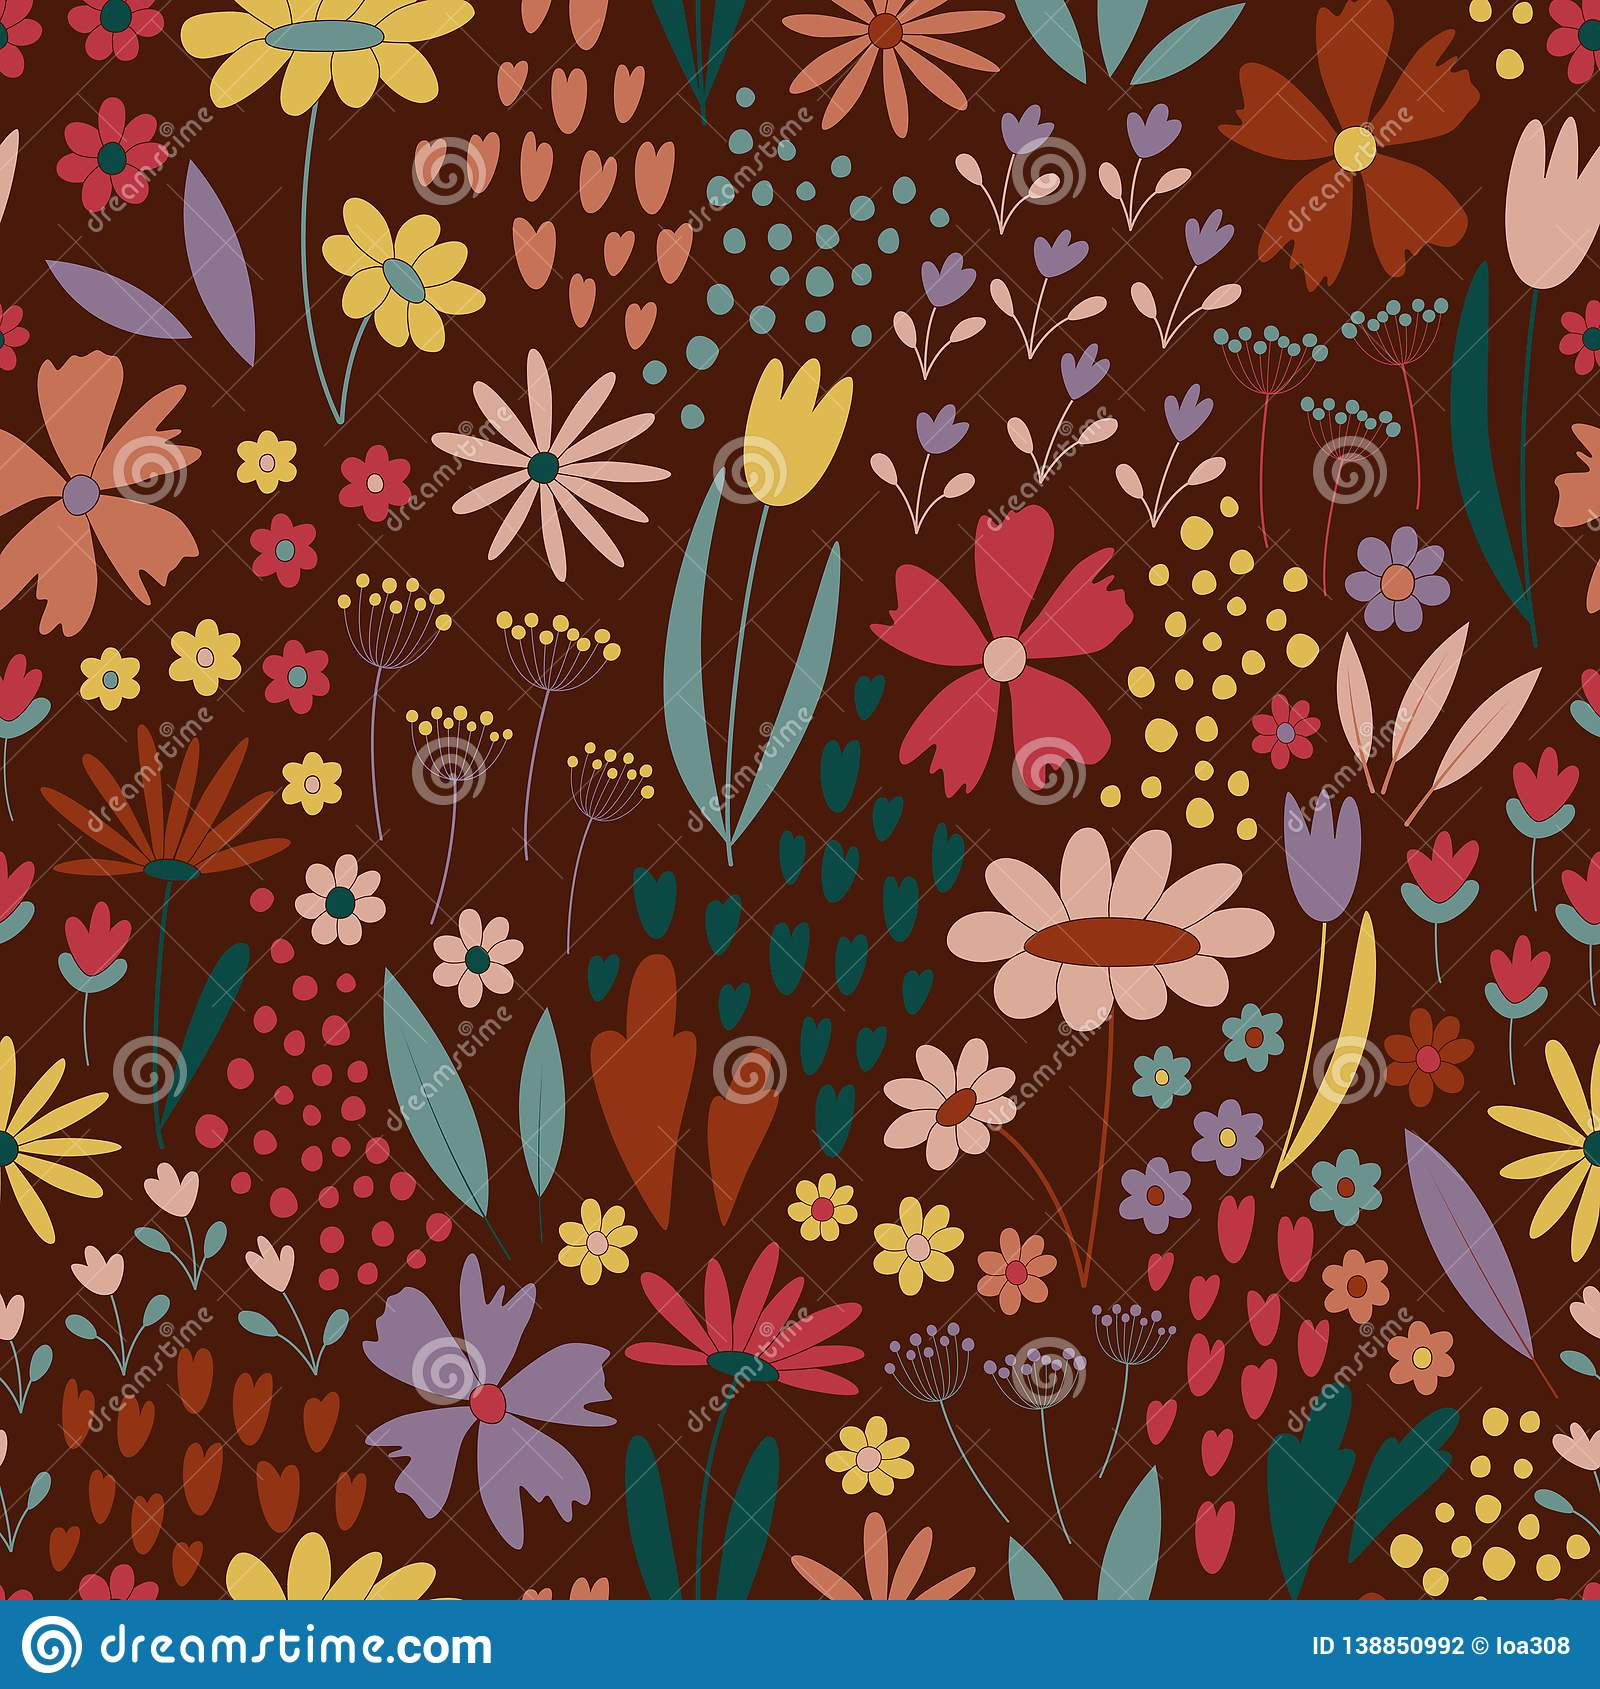 Seamless pattern with flowers and little elements